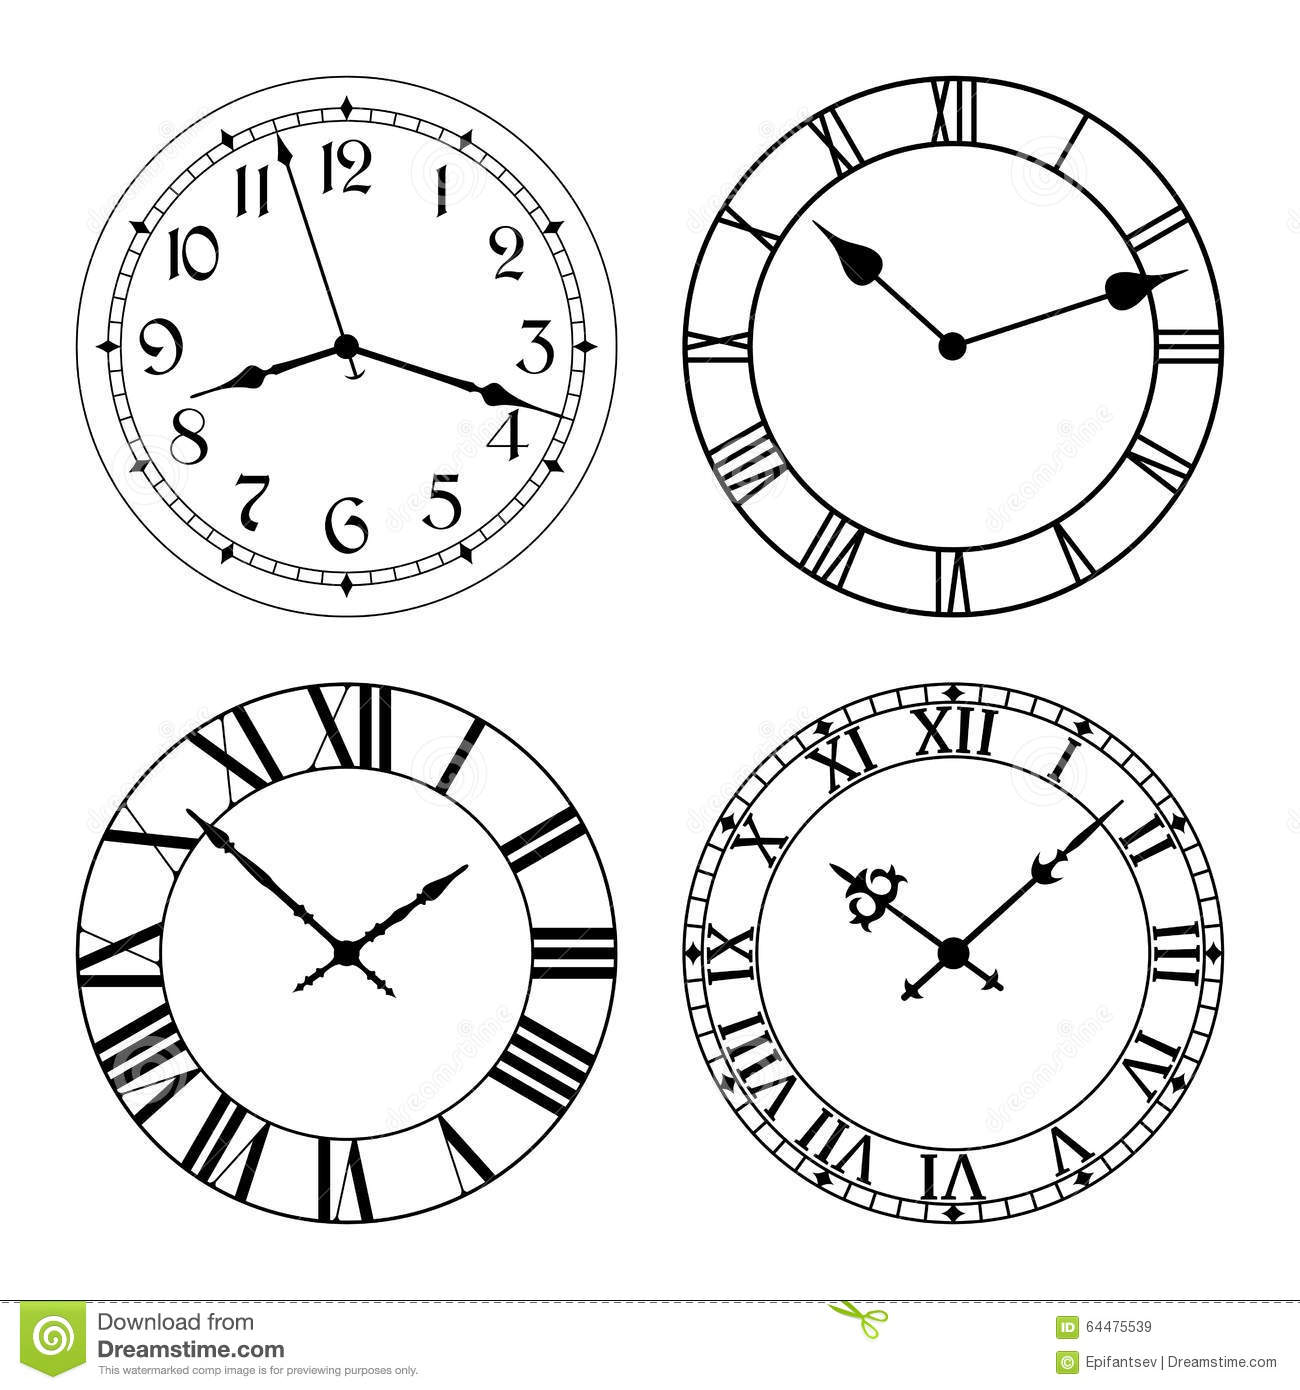 It's just a graphic of Dashing Clock Face Designs